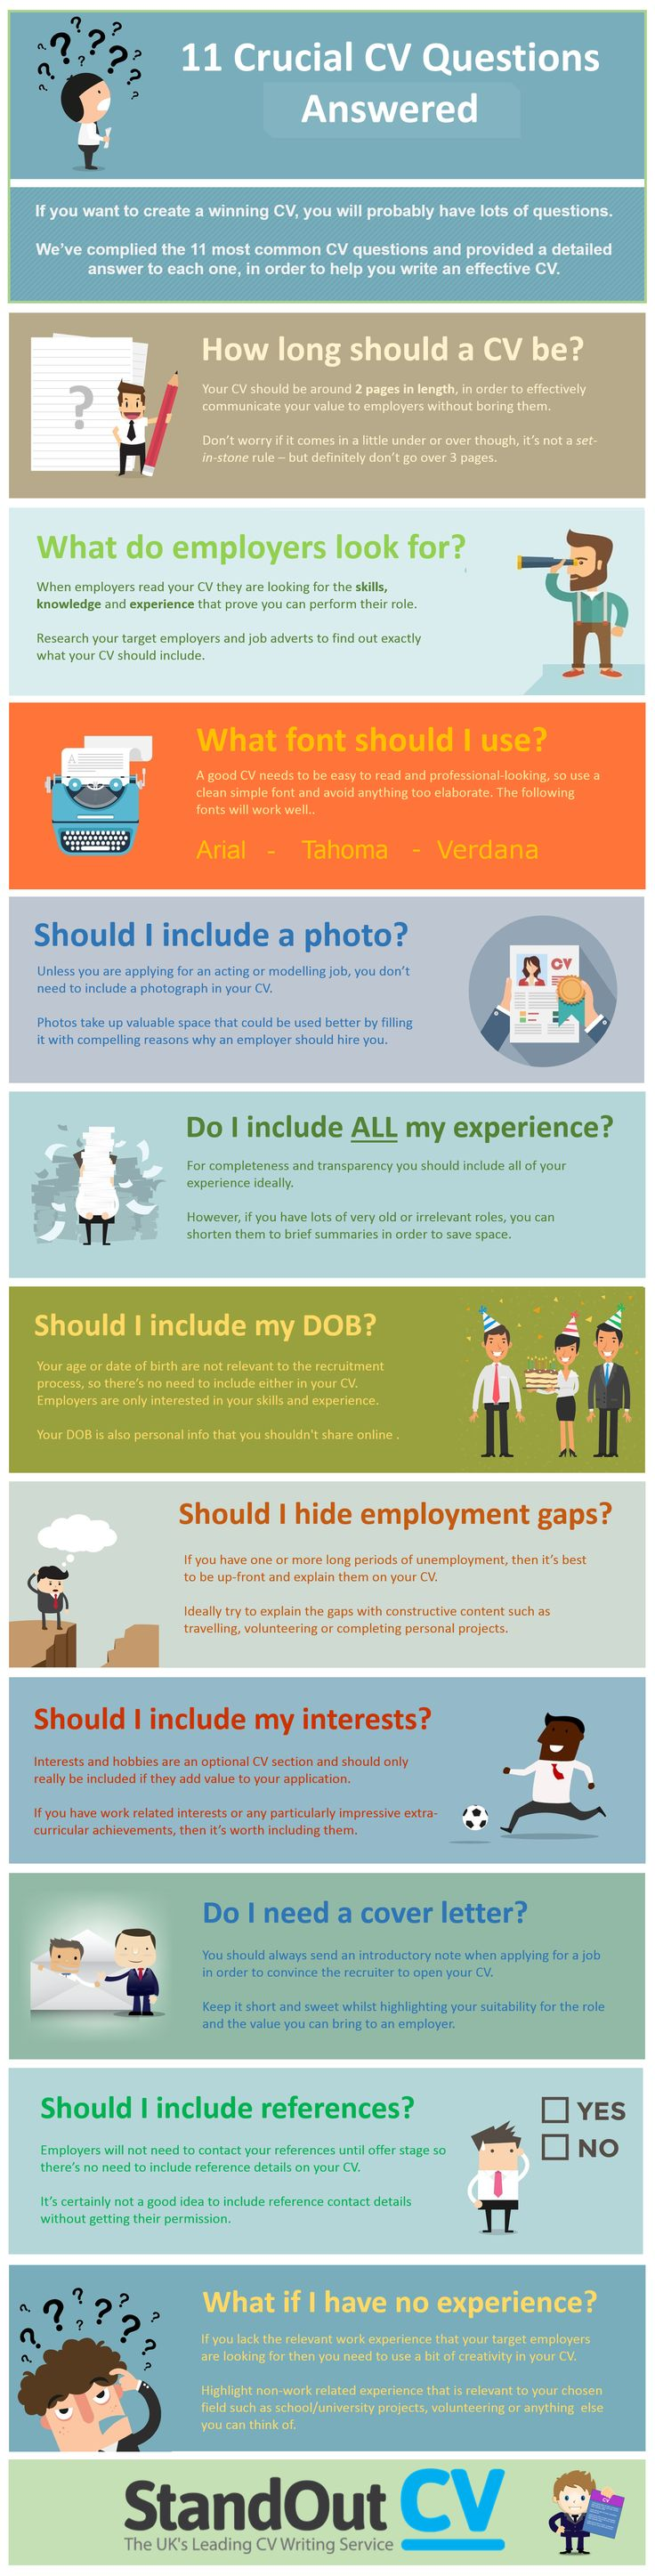 best ideas about professional cv examples resume the 11 most common cv writing questions answered infographic compiles the 11 most frequently asked cv